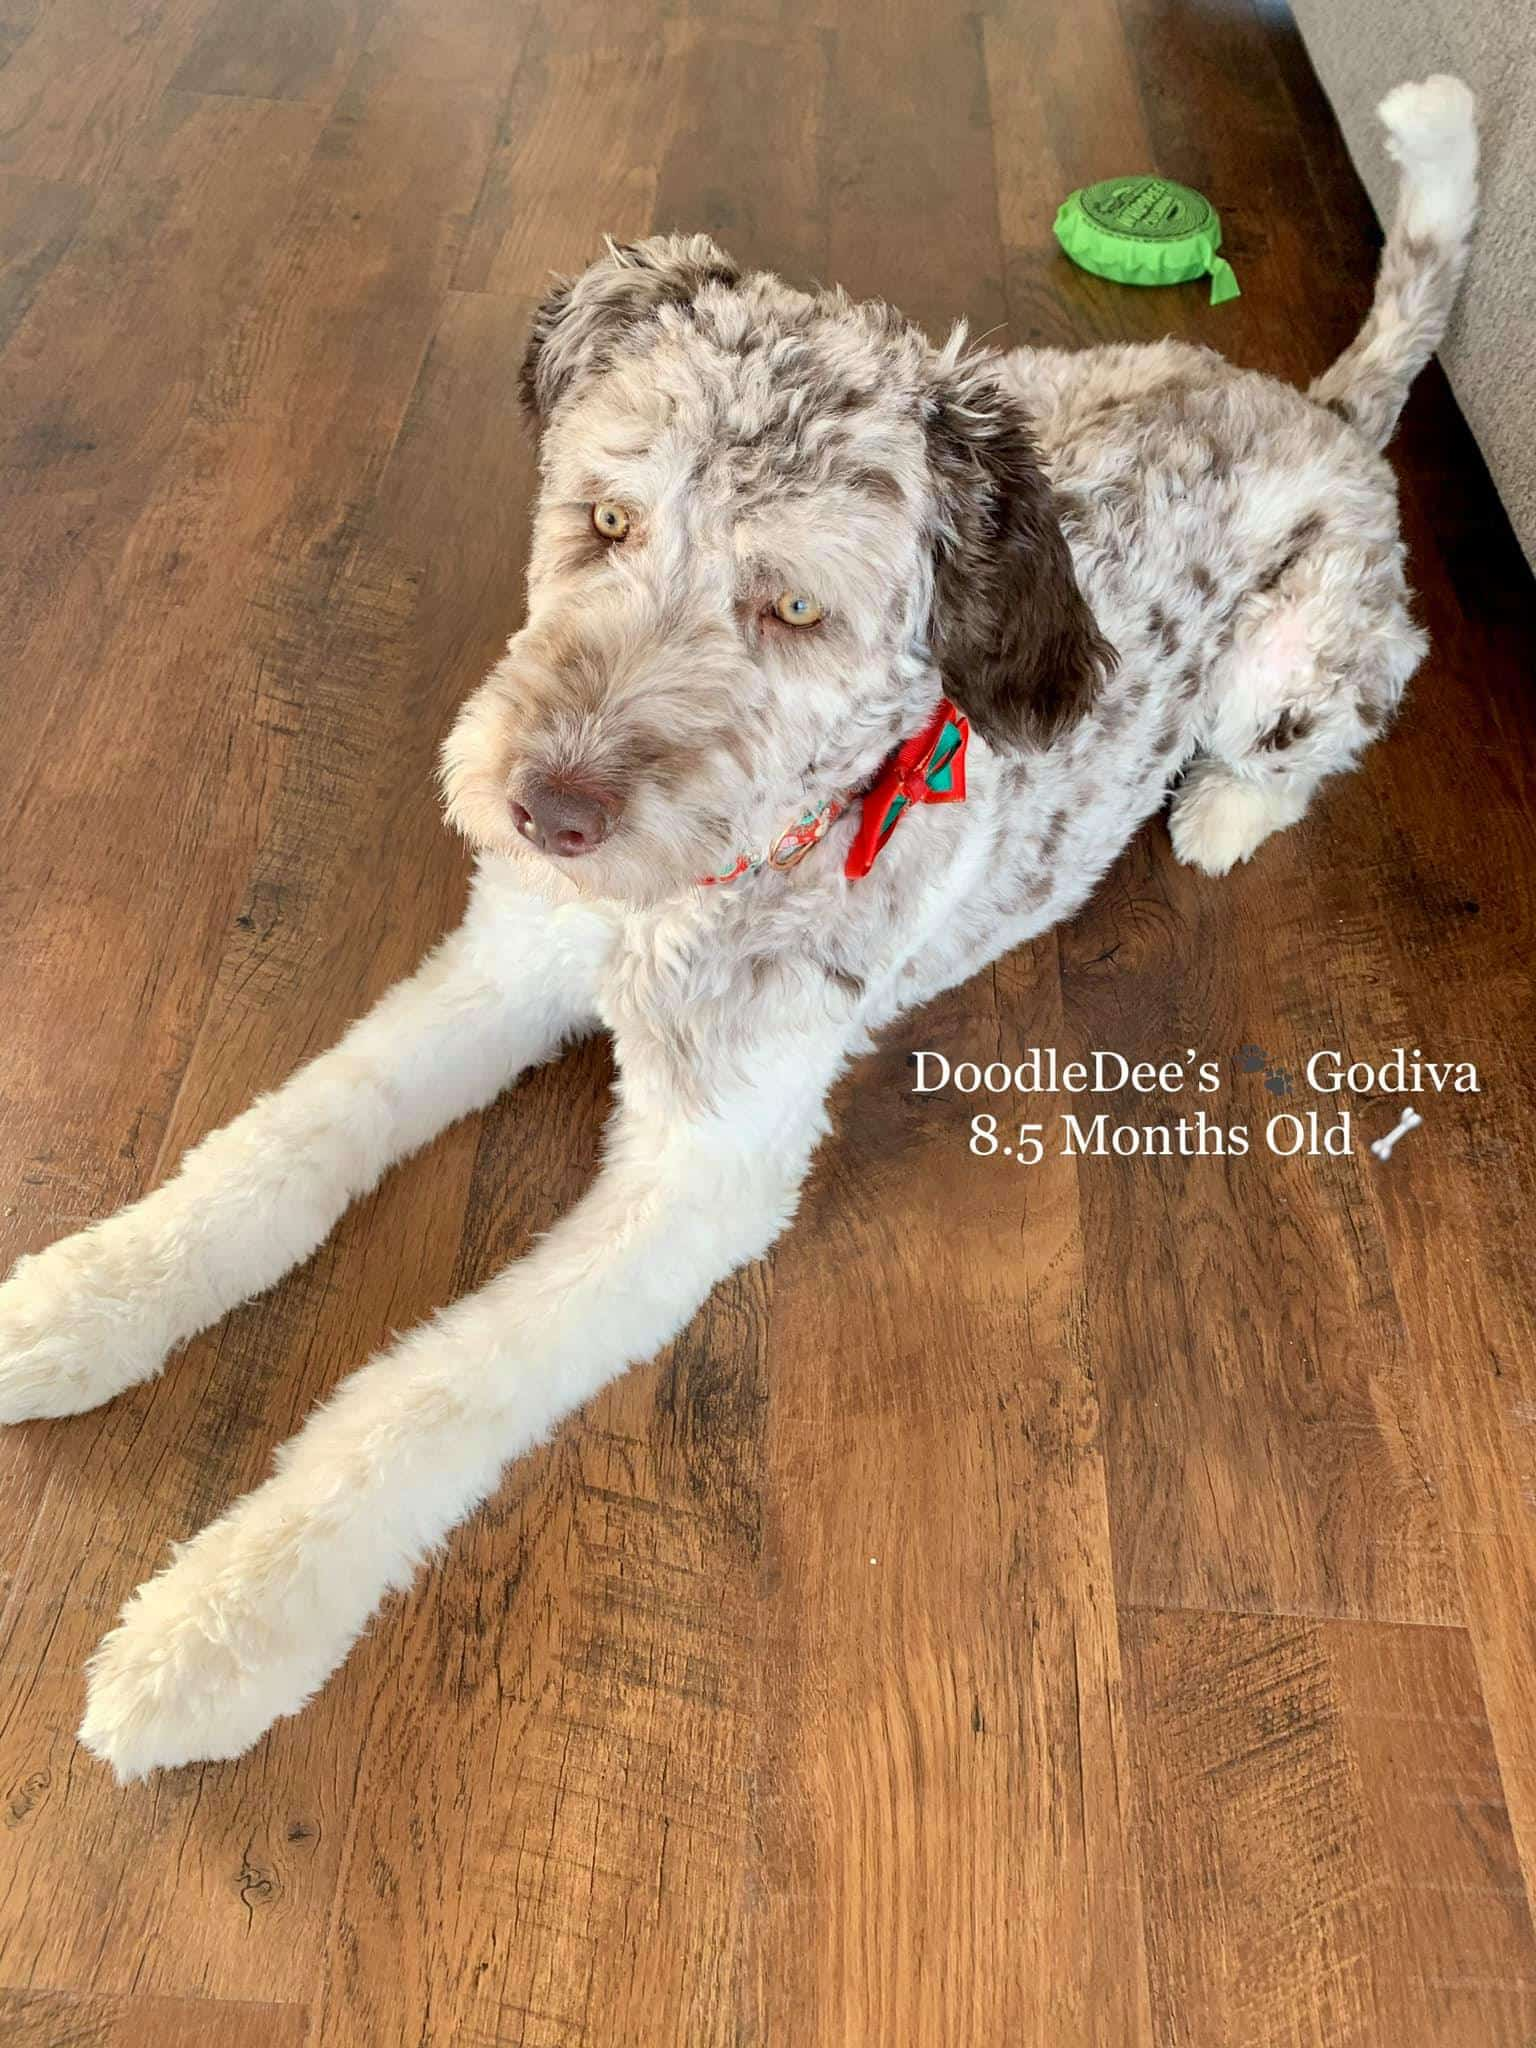 goldendoodle, chocolate merle goldendoodle, goldendoodle, mini goldendoodle, chocolate goldendoodle, goldendoodle puppies for sale, goldendoodle near me